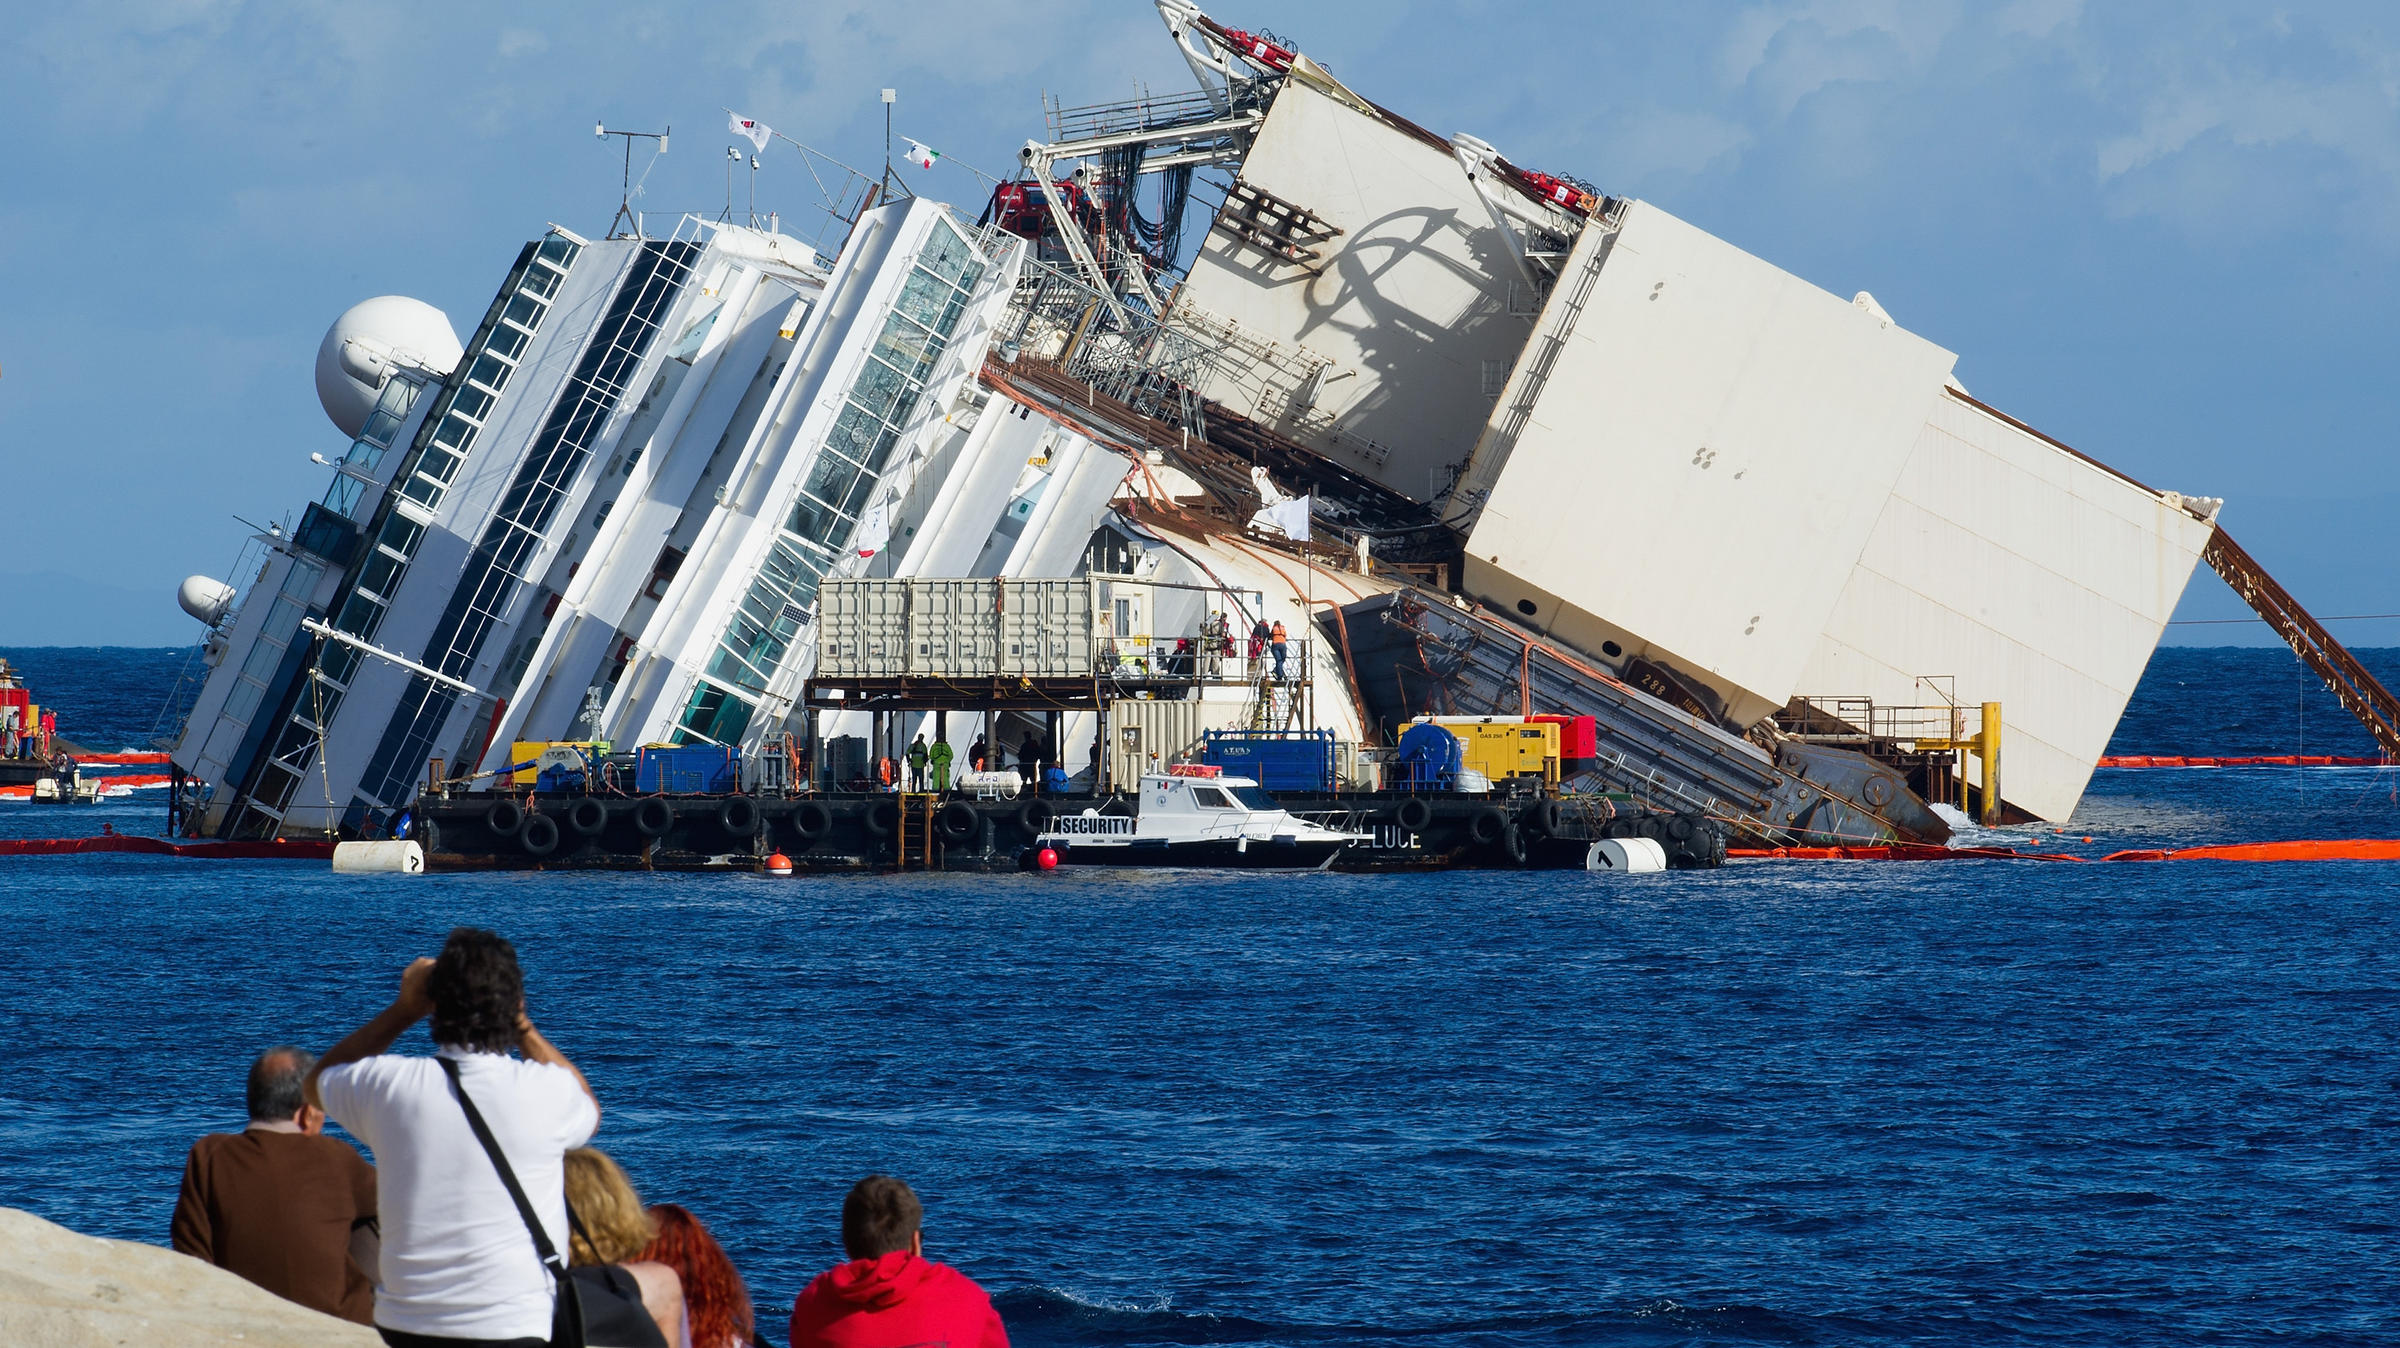 How To Watch As The Costa Concordia Is (Hopefully) Righted